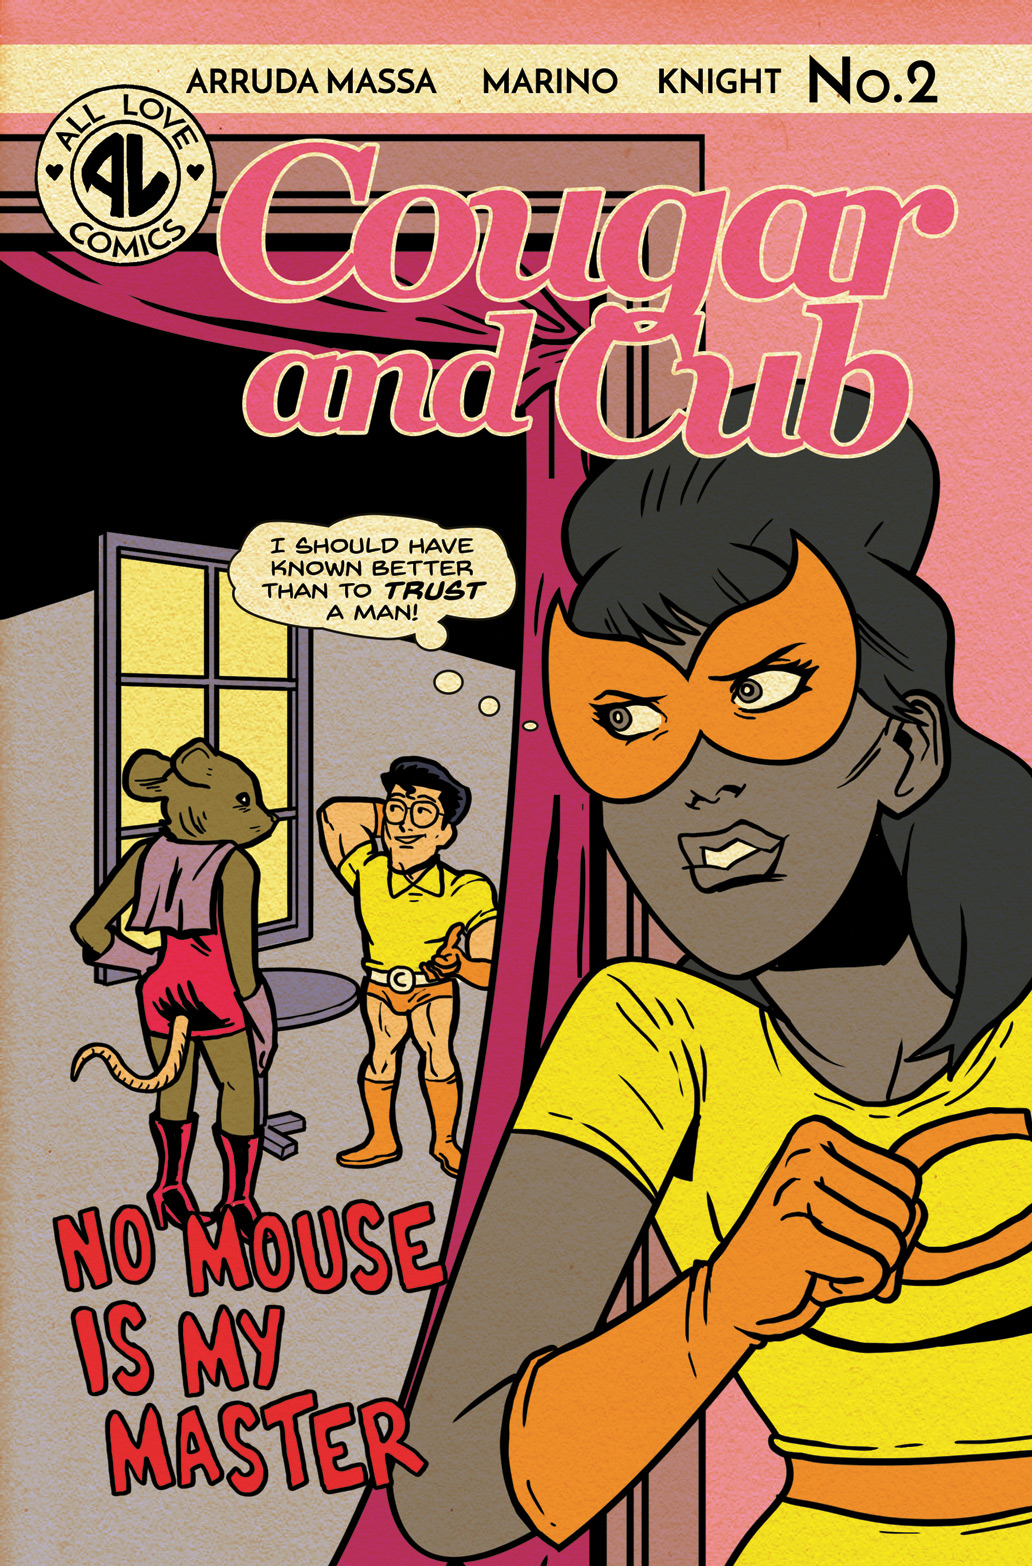 Cougar and Cub #2 flashback cover